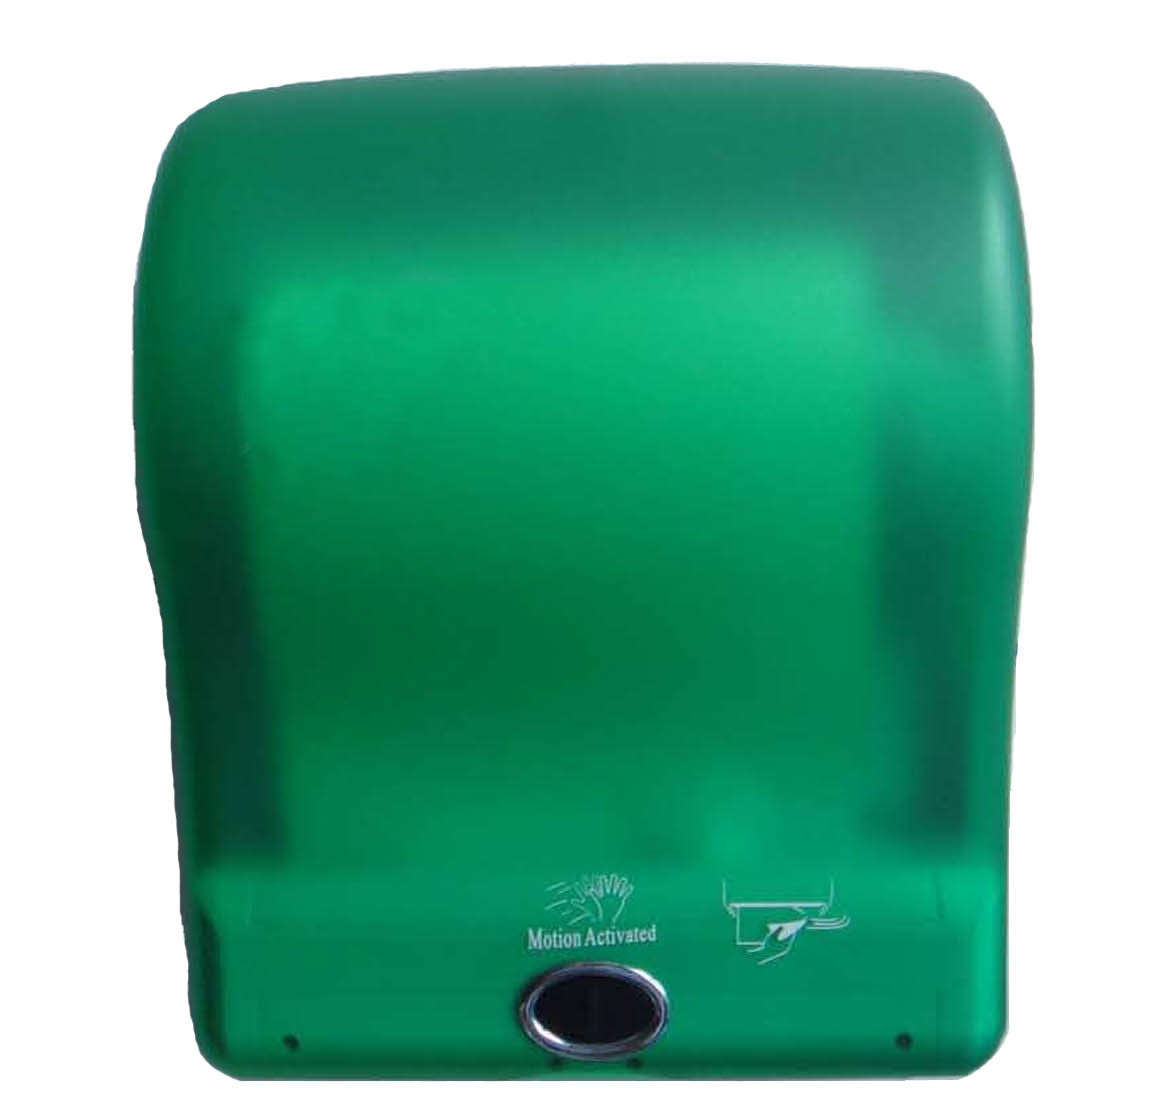 China automatic paper towel dispenser pd s10 china for Automatic paper towel